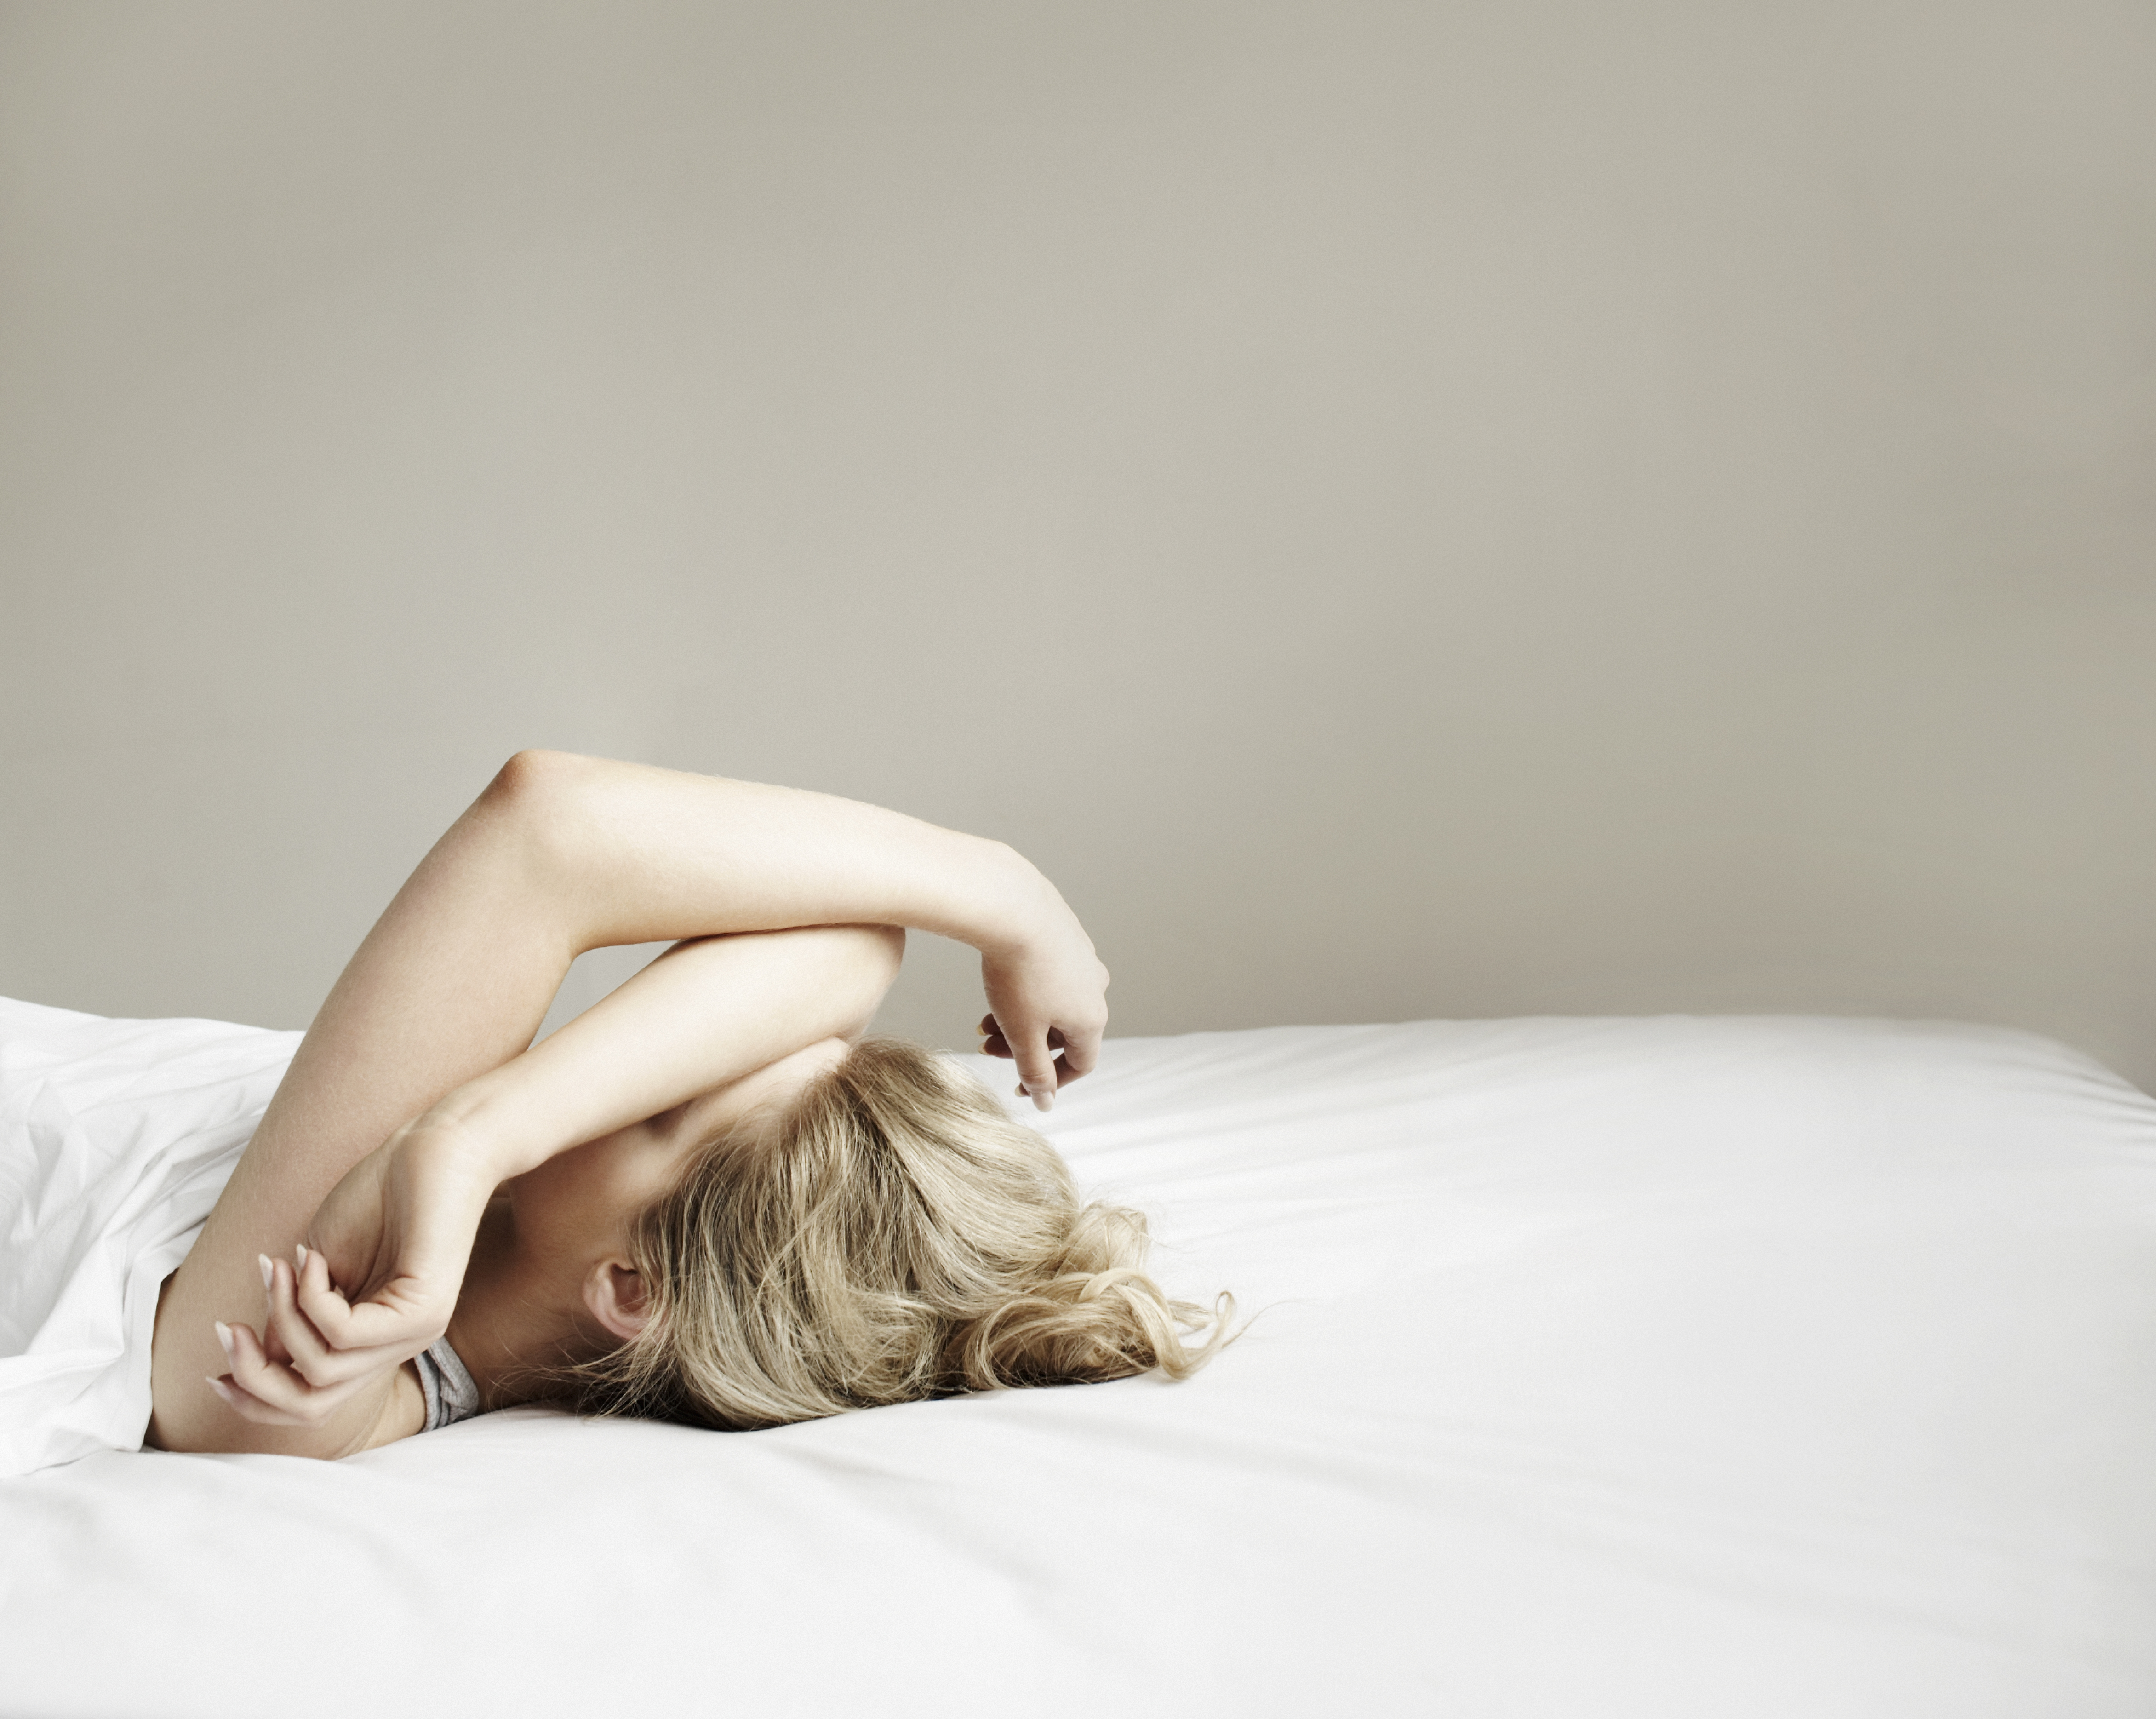 What foods cause nightmares?